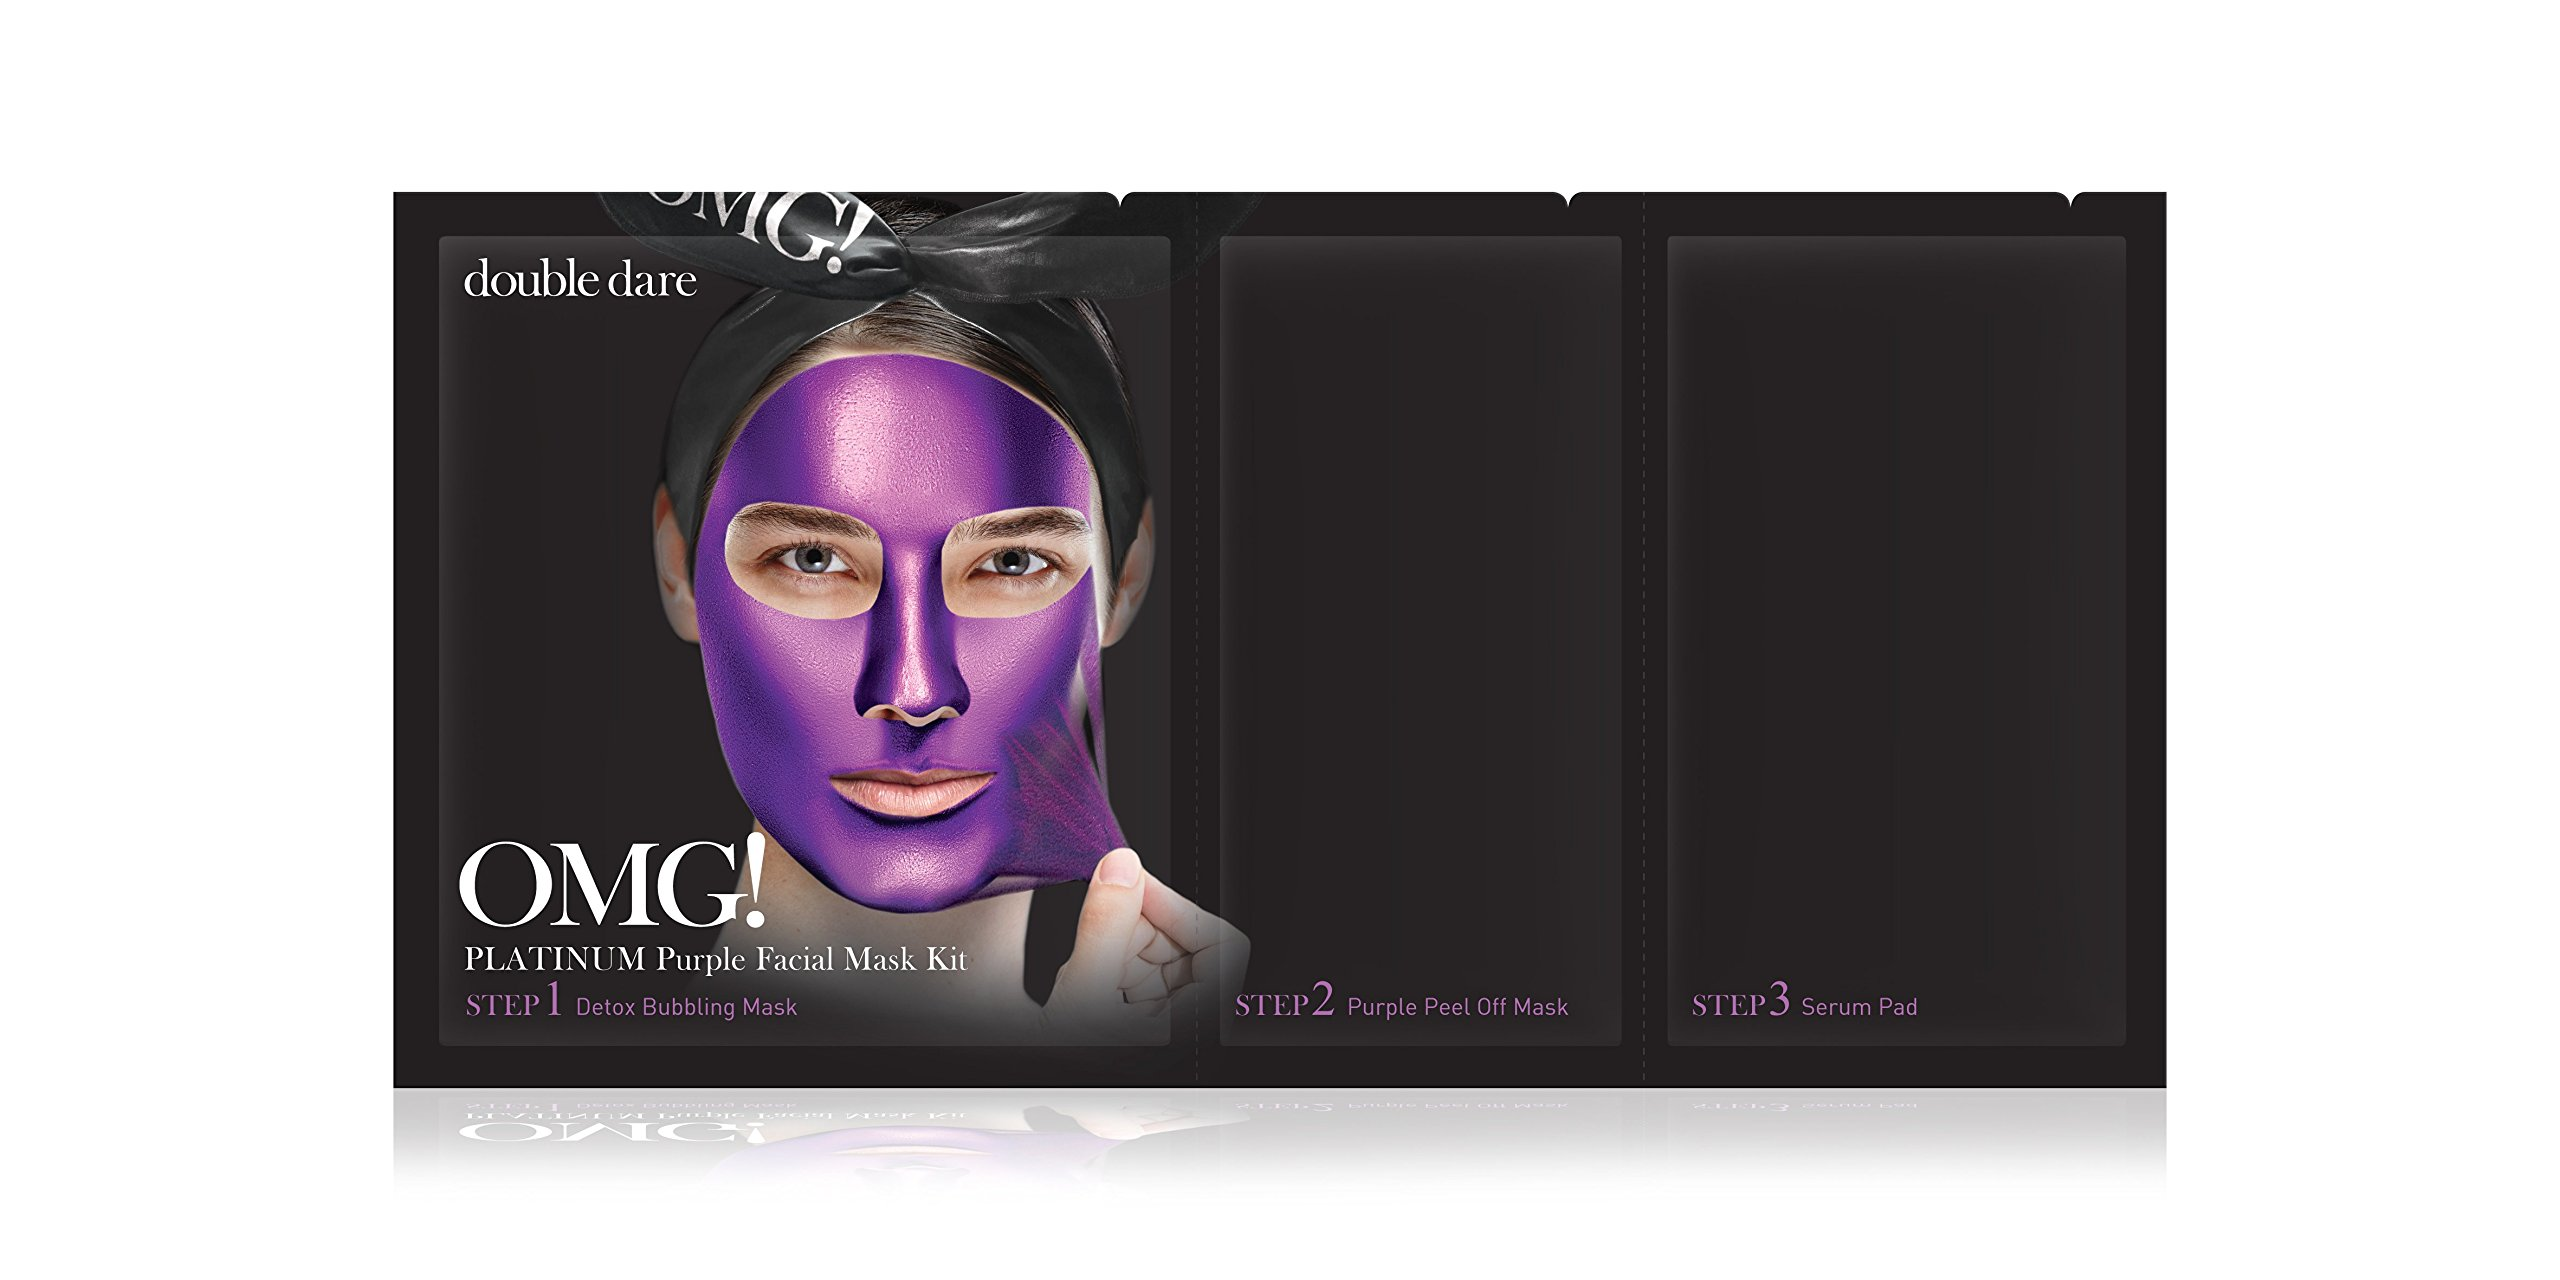 Double Dare, OMG, Platinum Green Facial Mask Kit, 3 in 1 Kit(pack of 4) 6 Pack - Lancome Eau Micellaire Douceur Express Cleansing Water 6.7 oz